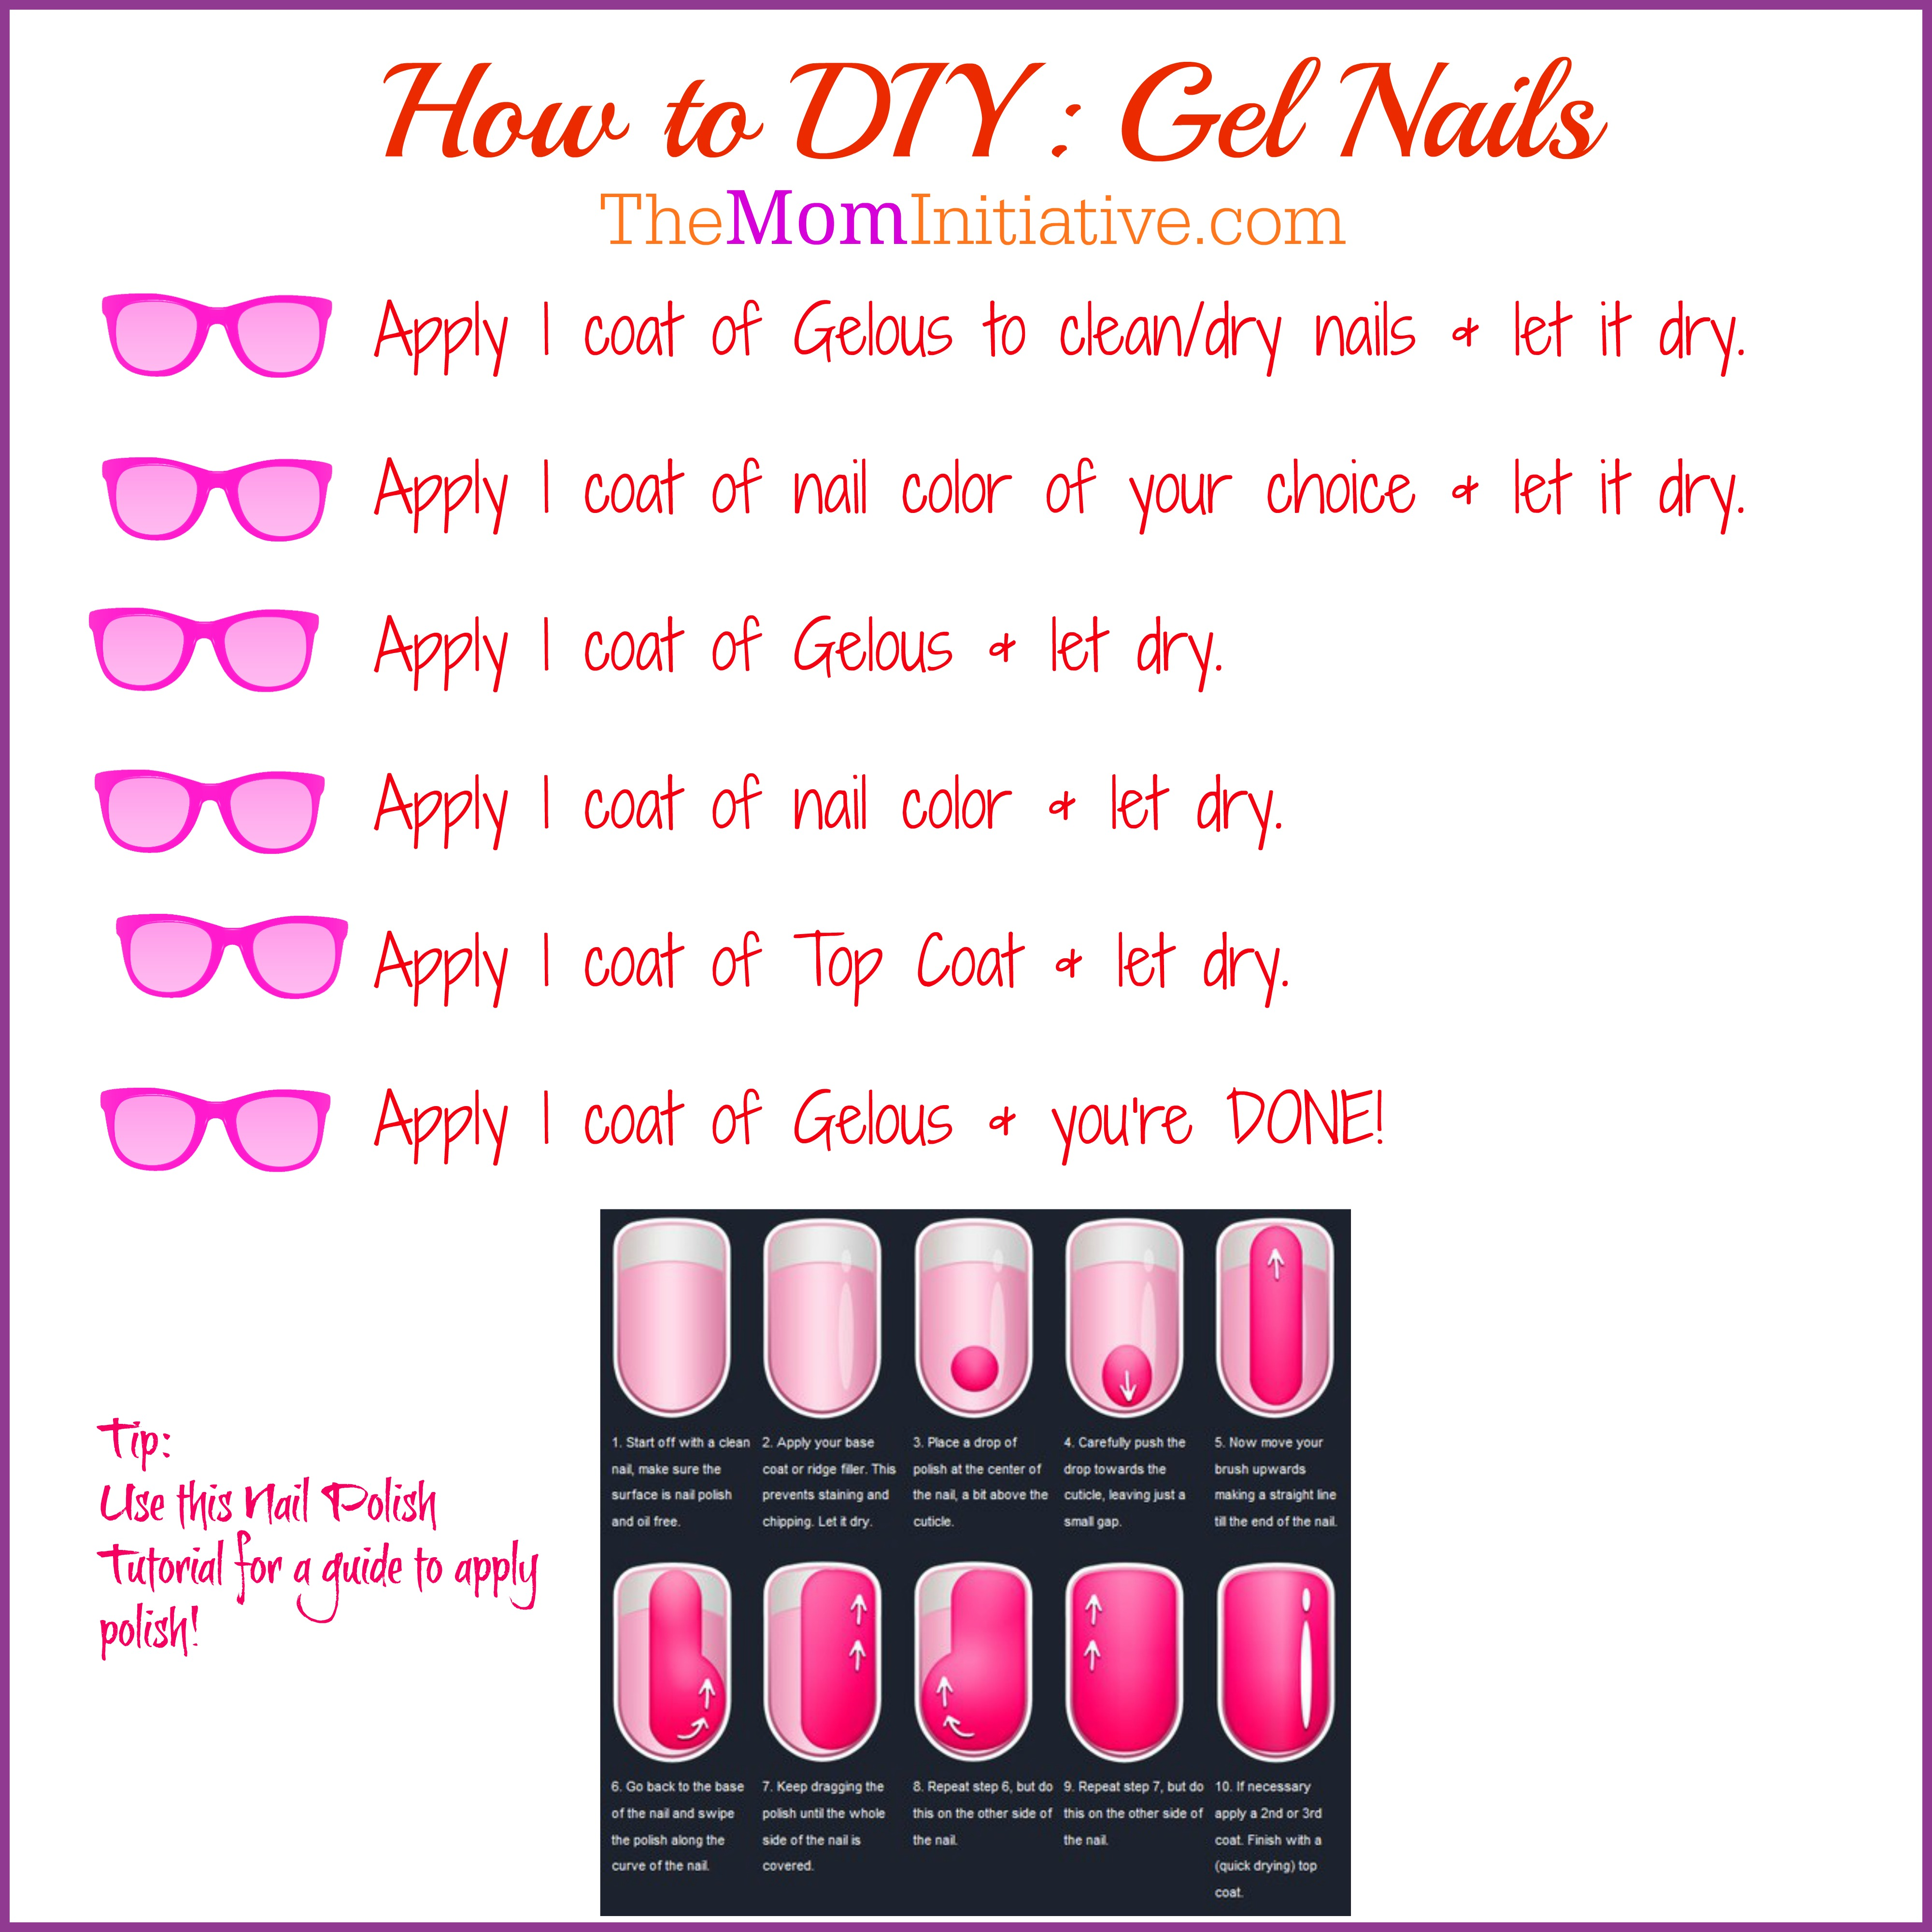 Salon FABULOUS Nails for under $7.00 - DIY GEL Nails - For Busy Moms ...